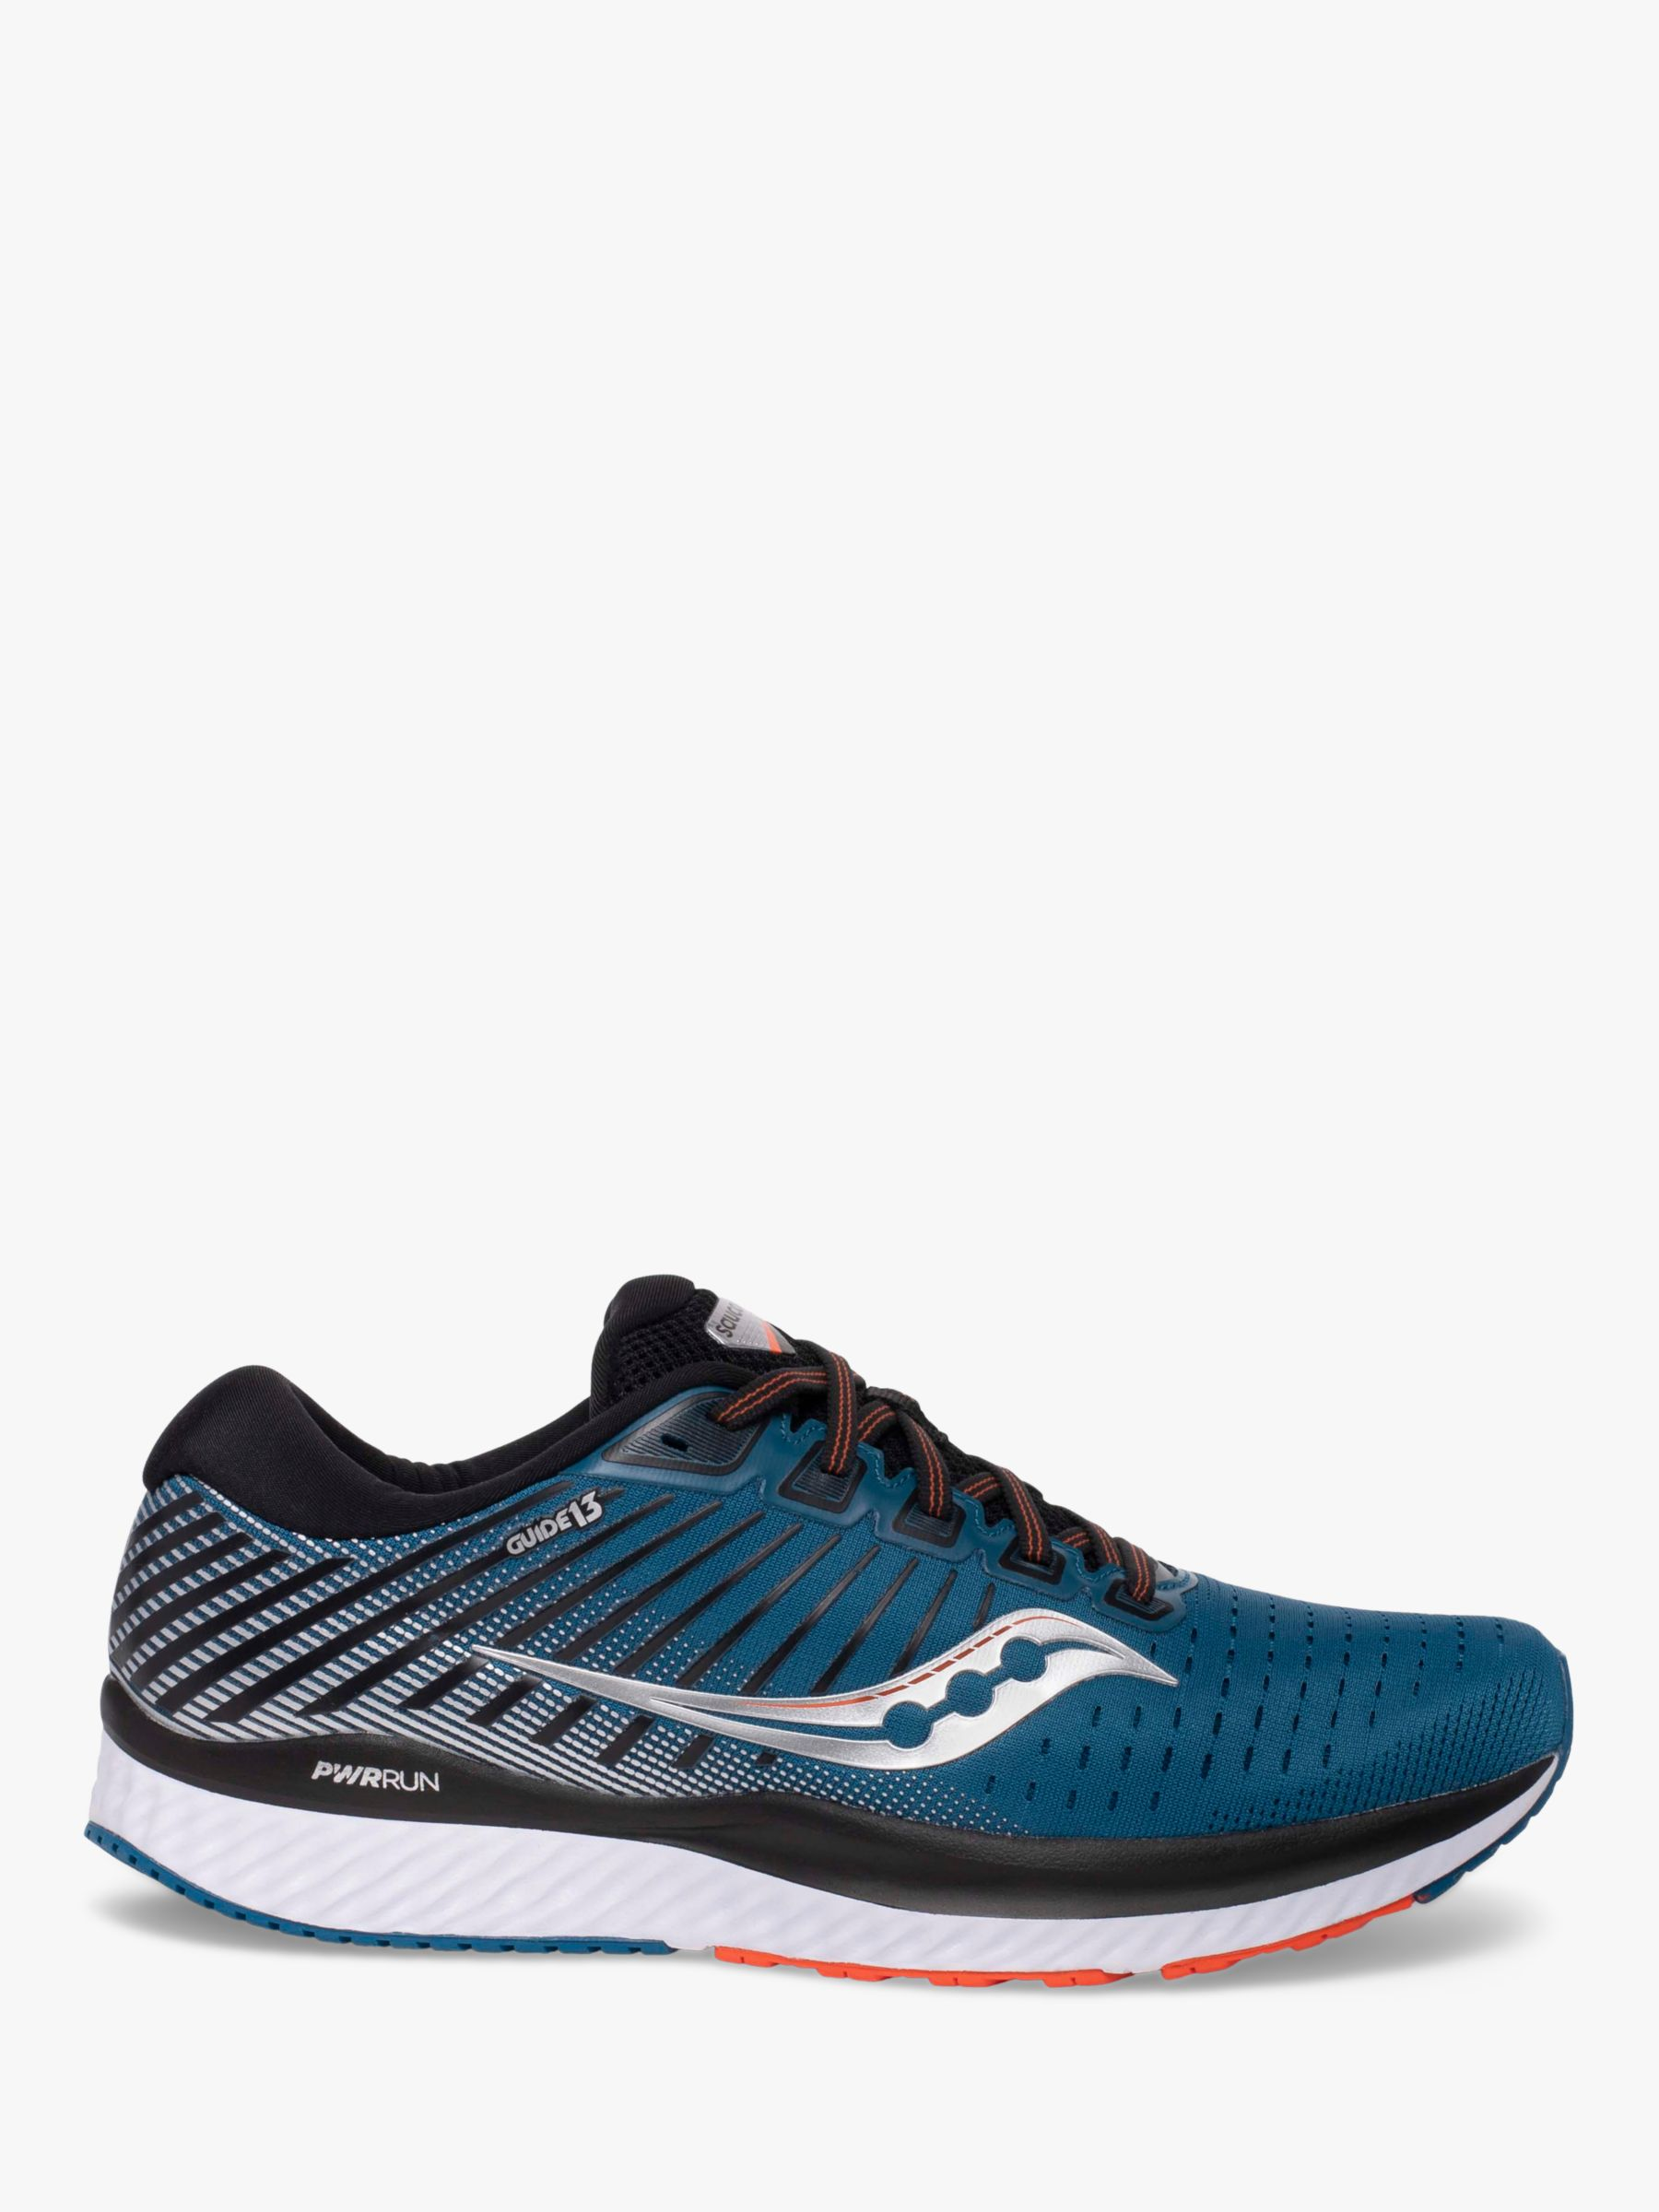 Saucony Saucony Guide 13 Men's Running Shoes, Blue/Silver